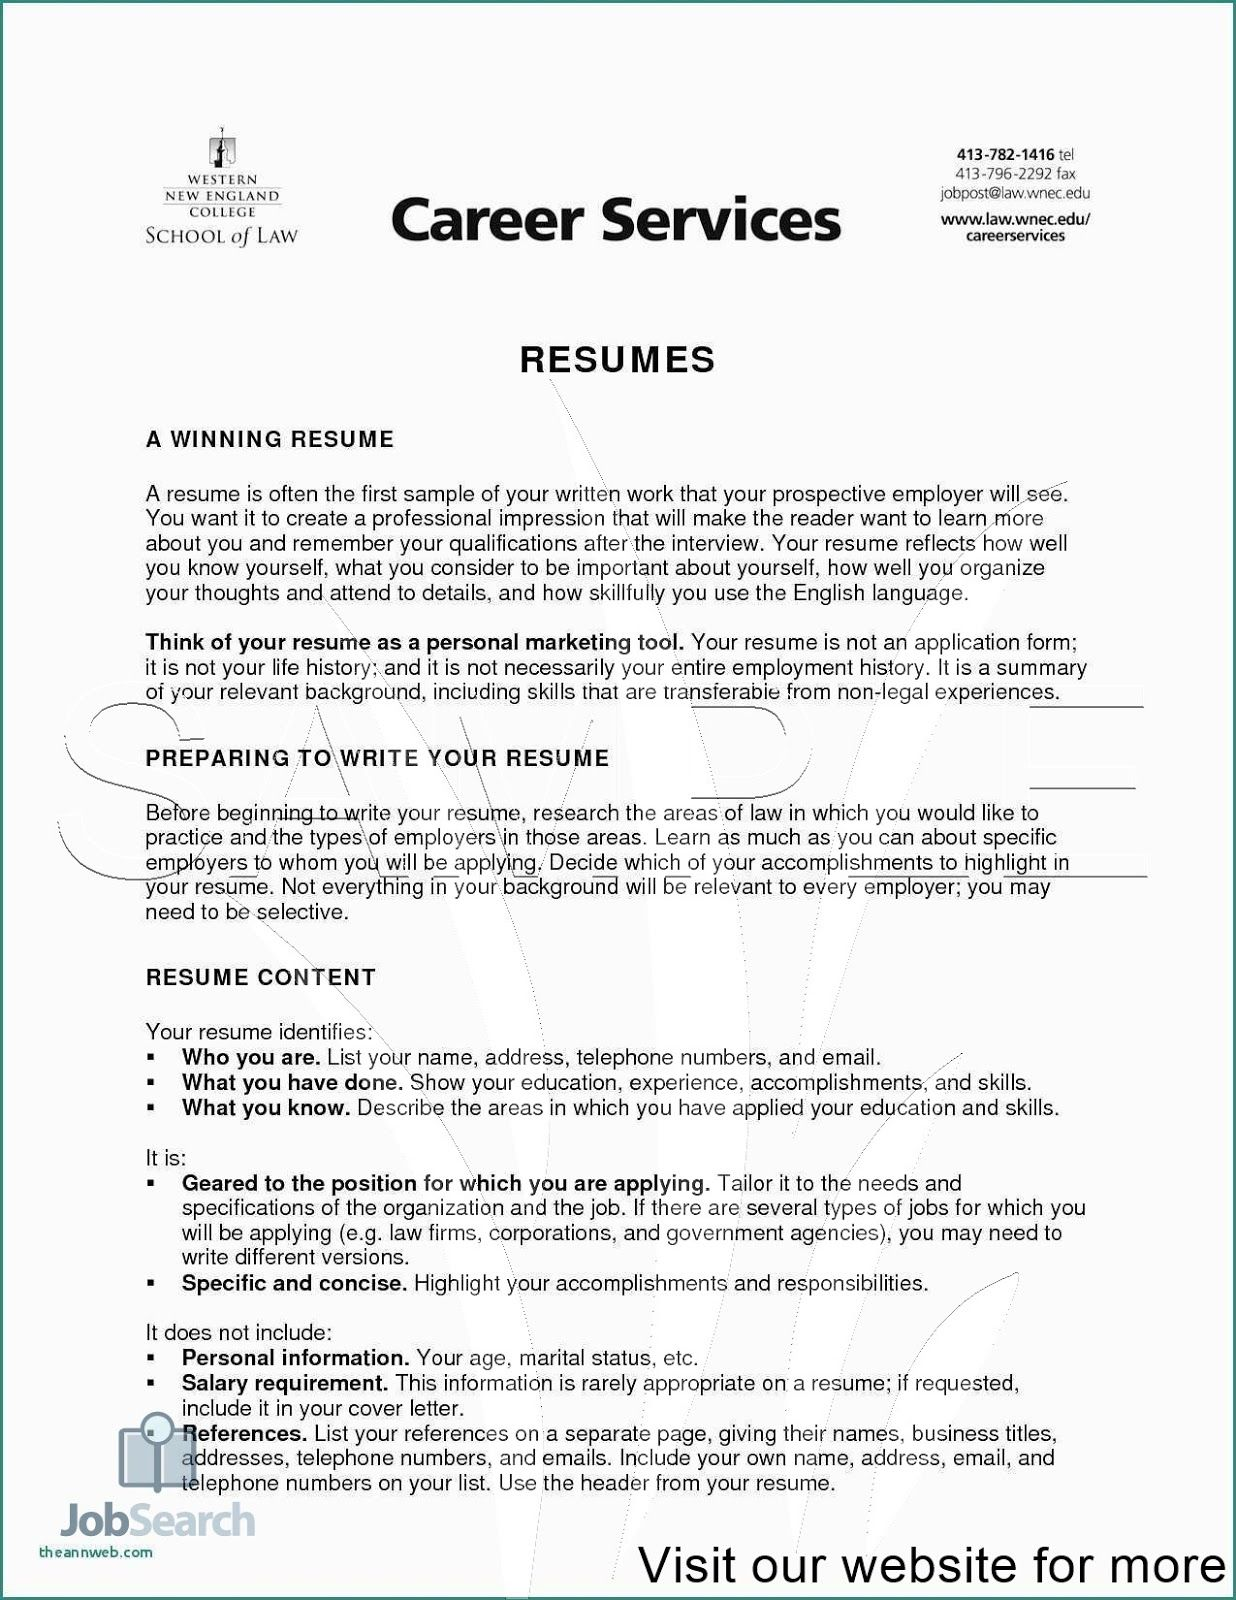 career services resume template free writing in professional samples examples brief Resume Brief Summary Of Your Background For Resume